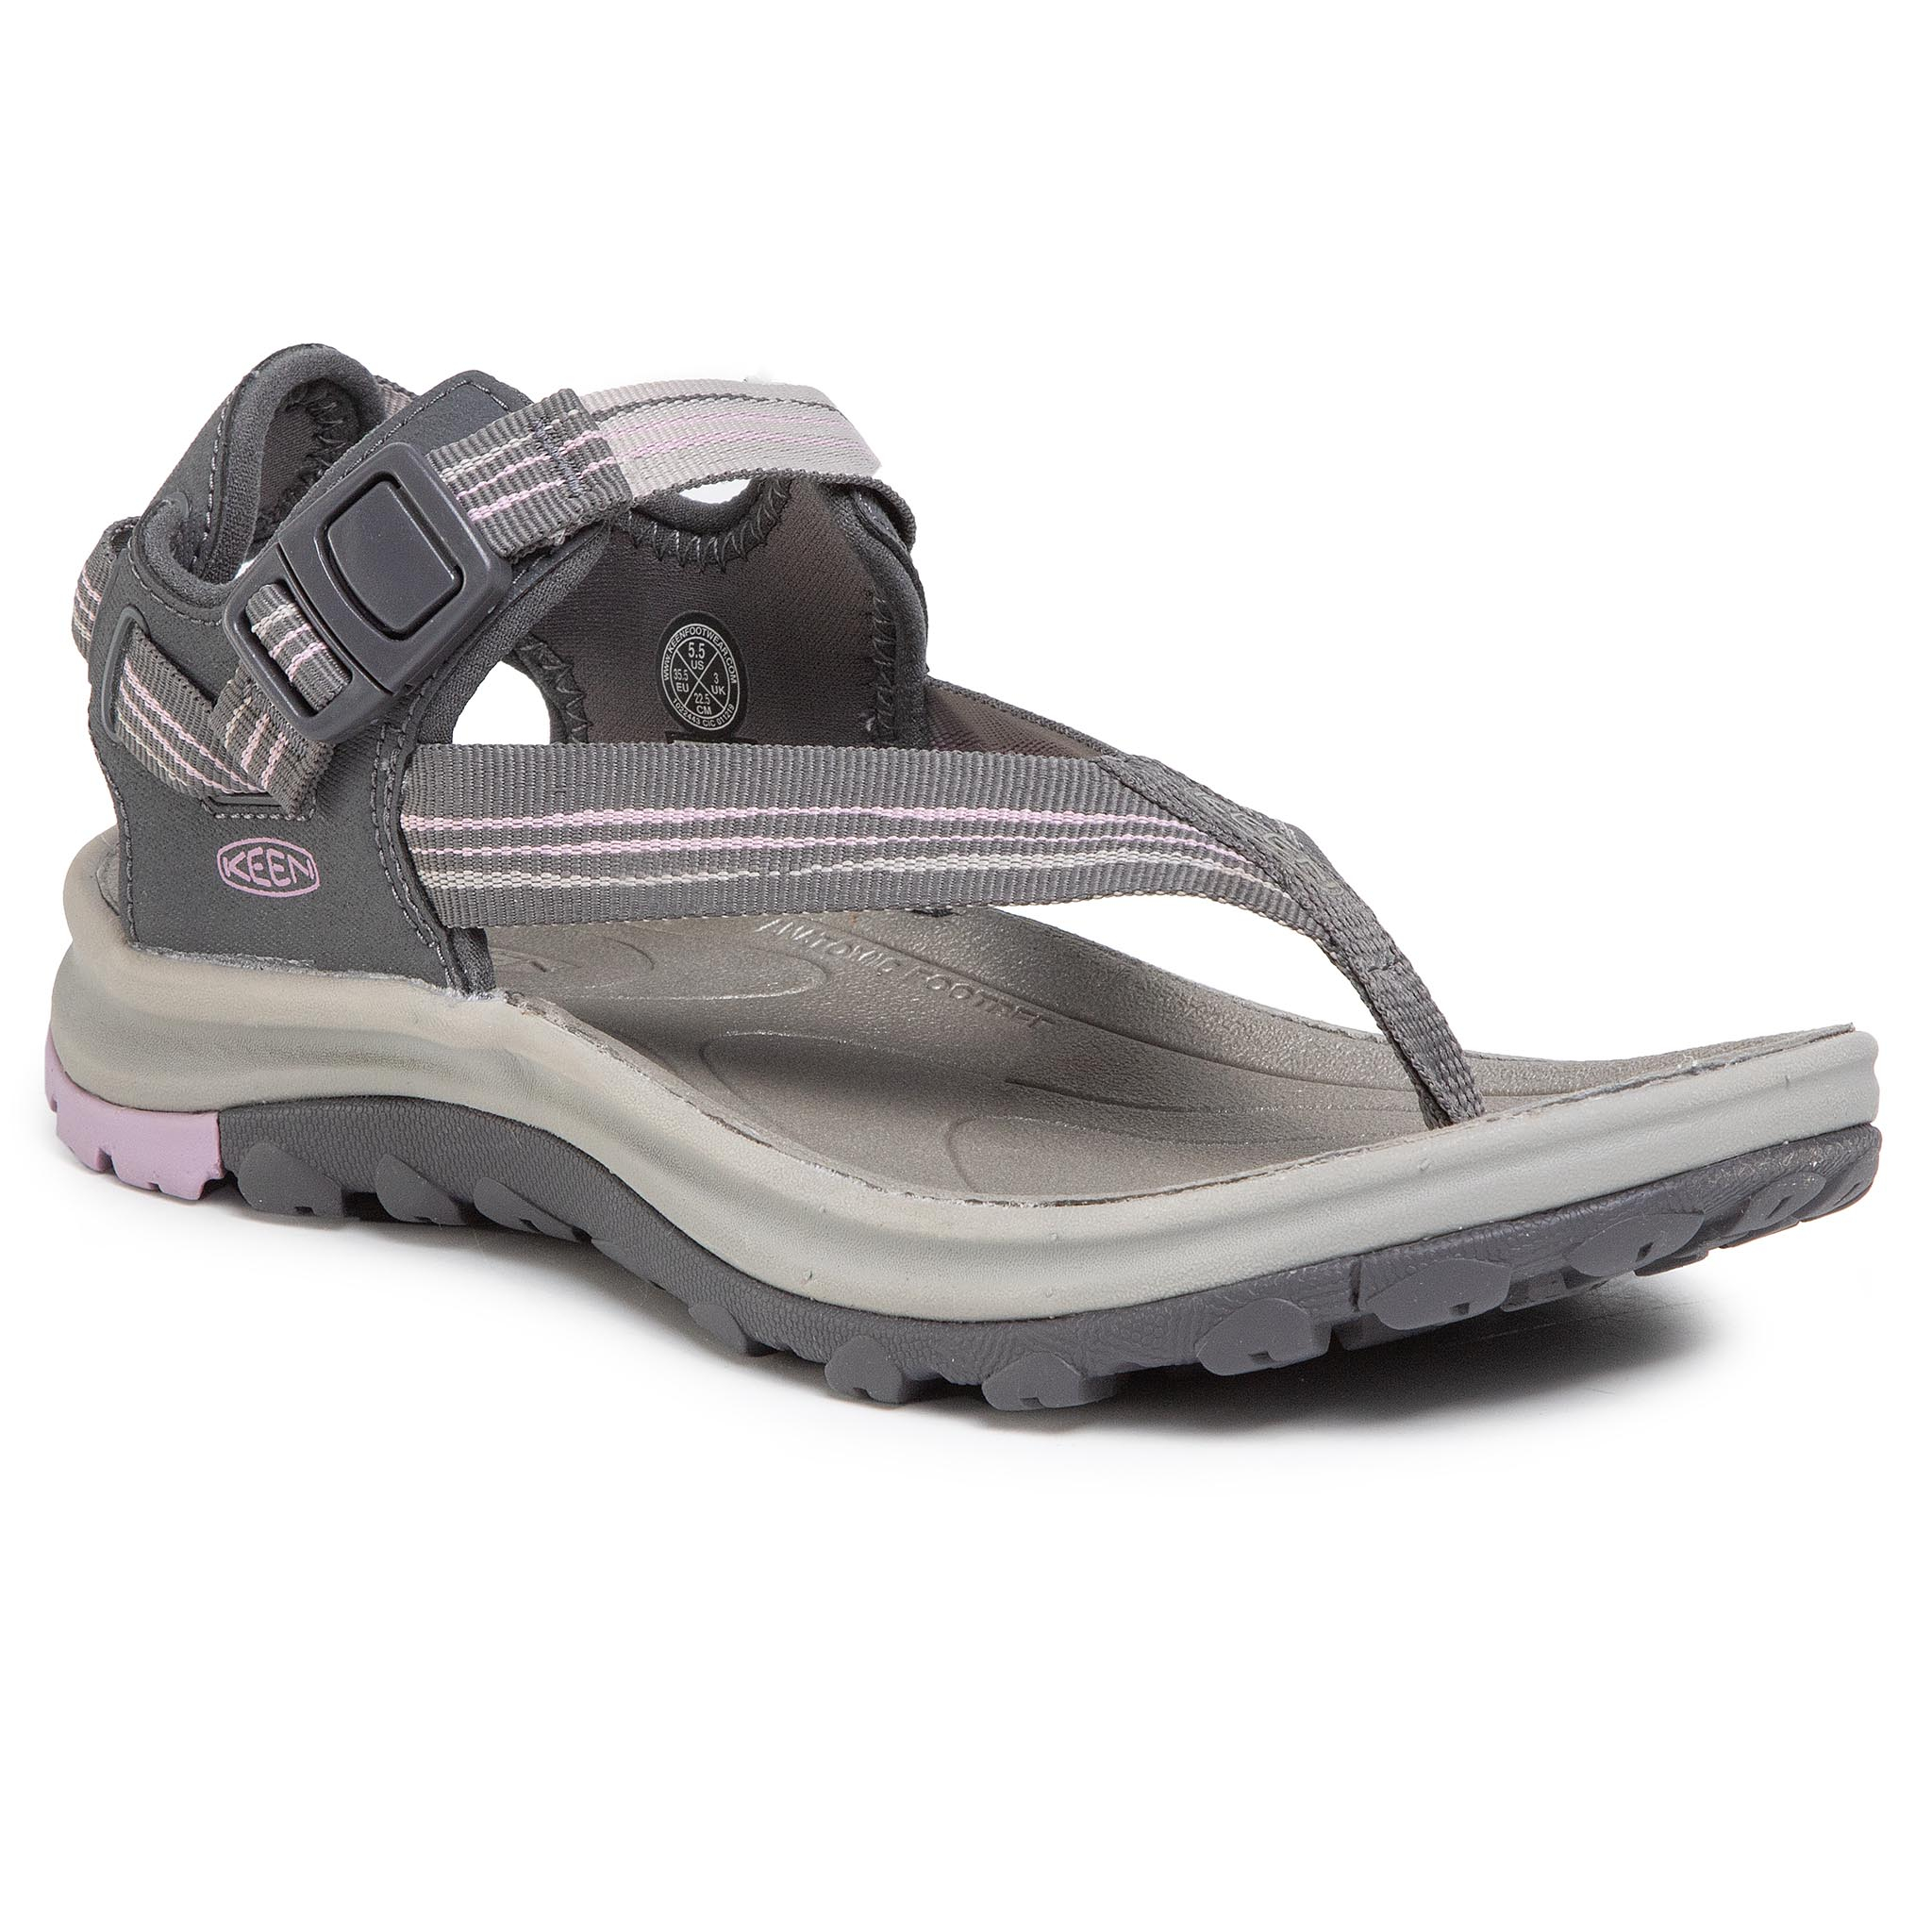 Sandale Keen - Terradora Ii Toe Post 1022443 Dark Grey/Dawn Pink imagine epantofi.ro 2021